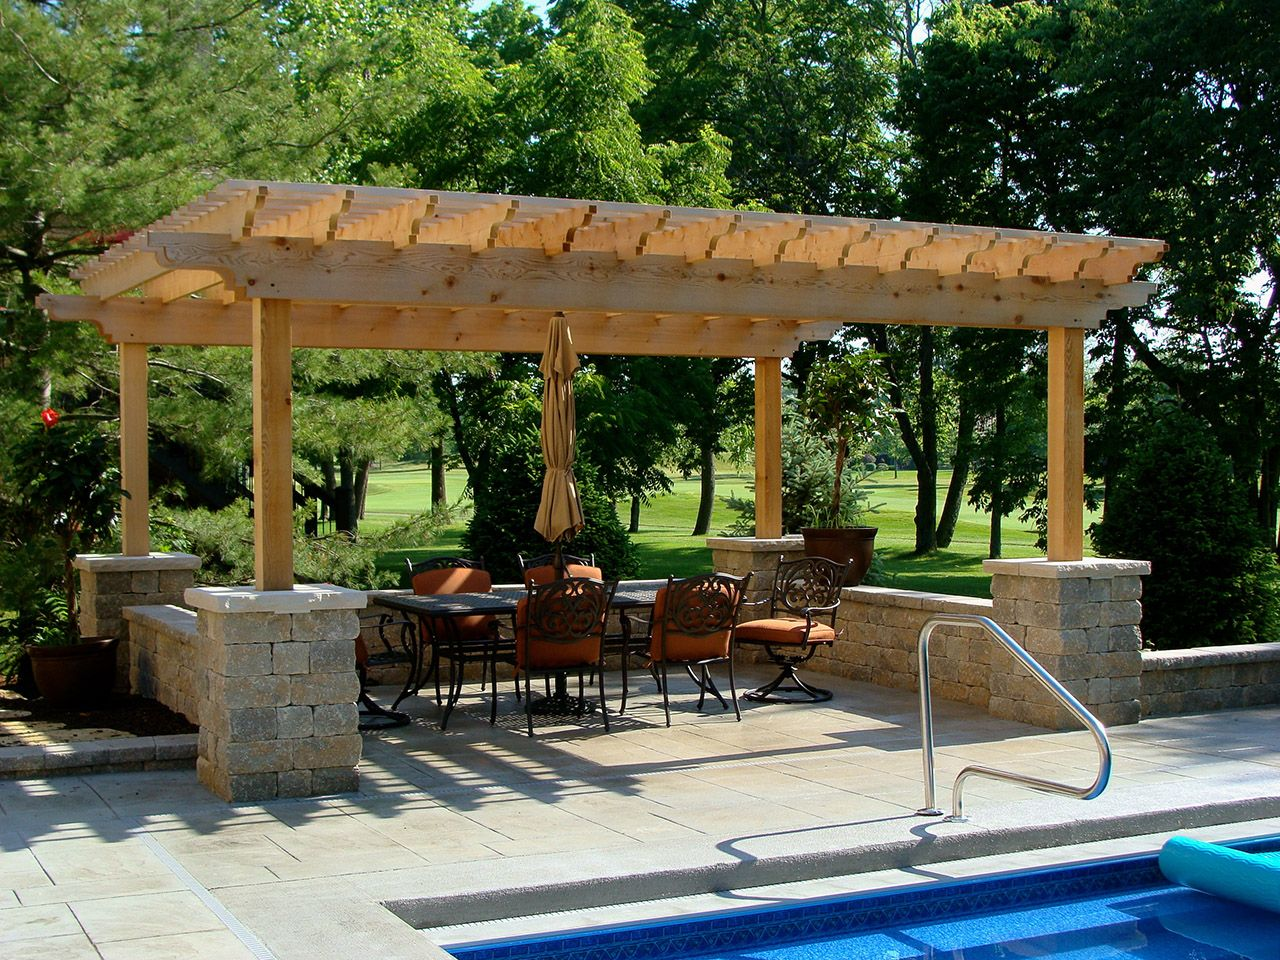 Stone Pergola Pillars And Gray Pool Patio